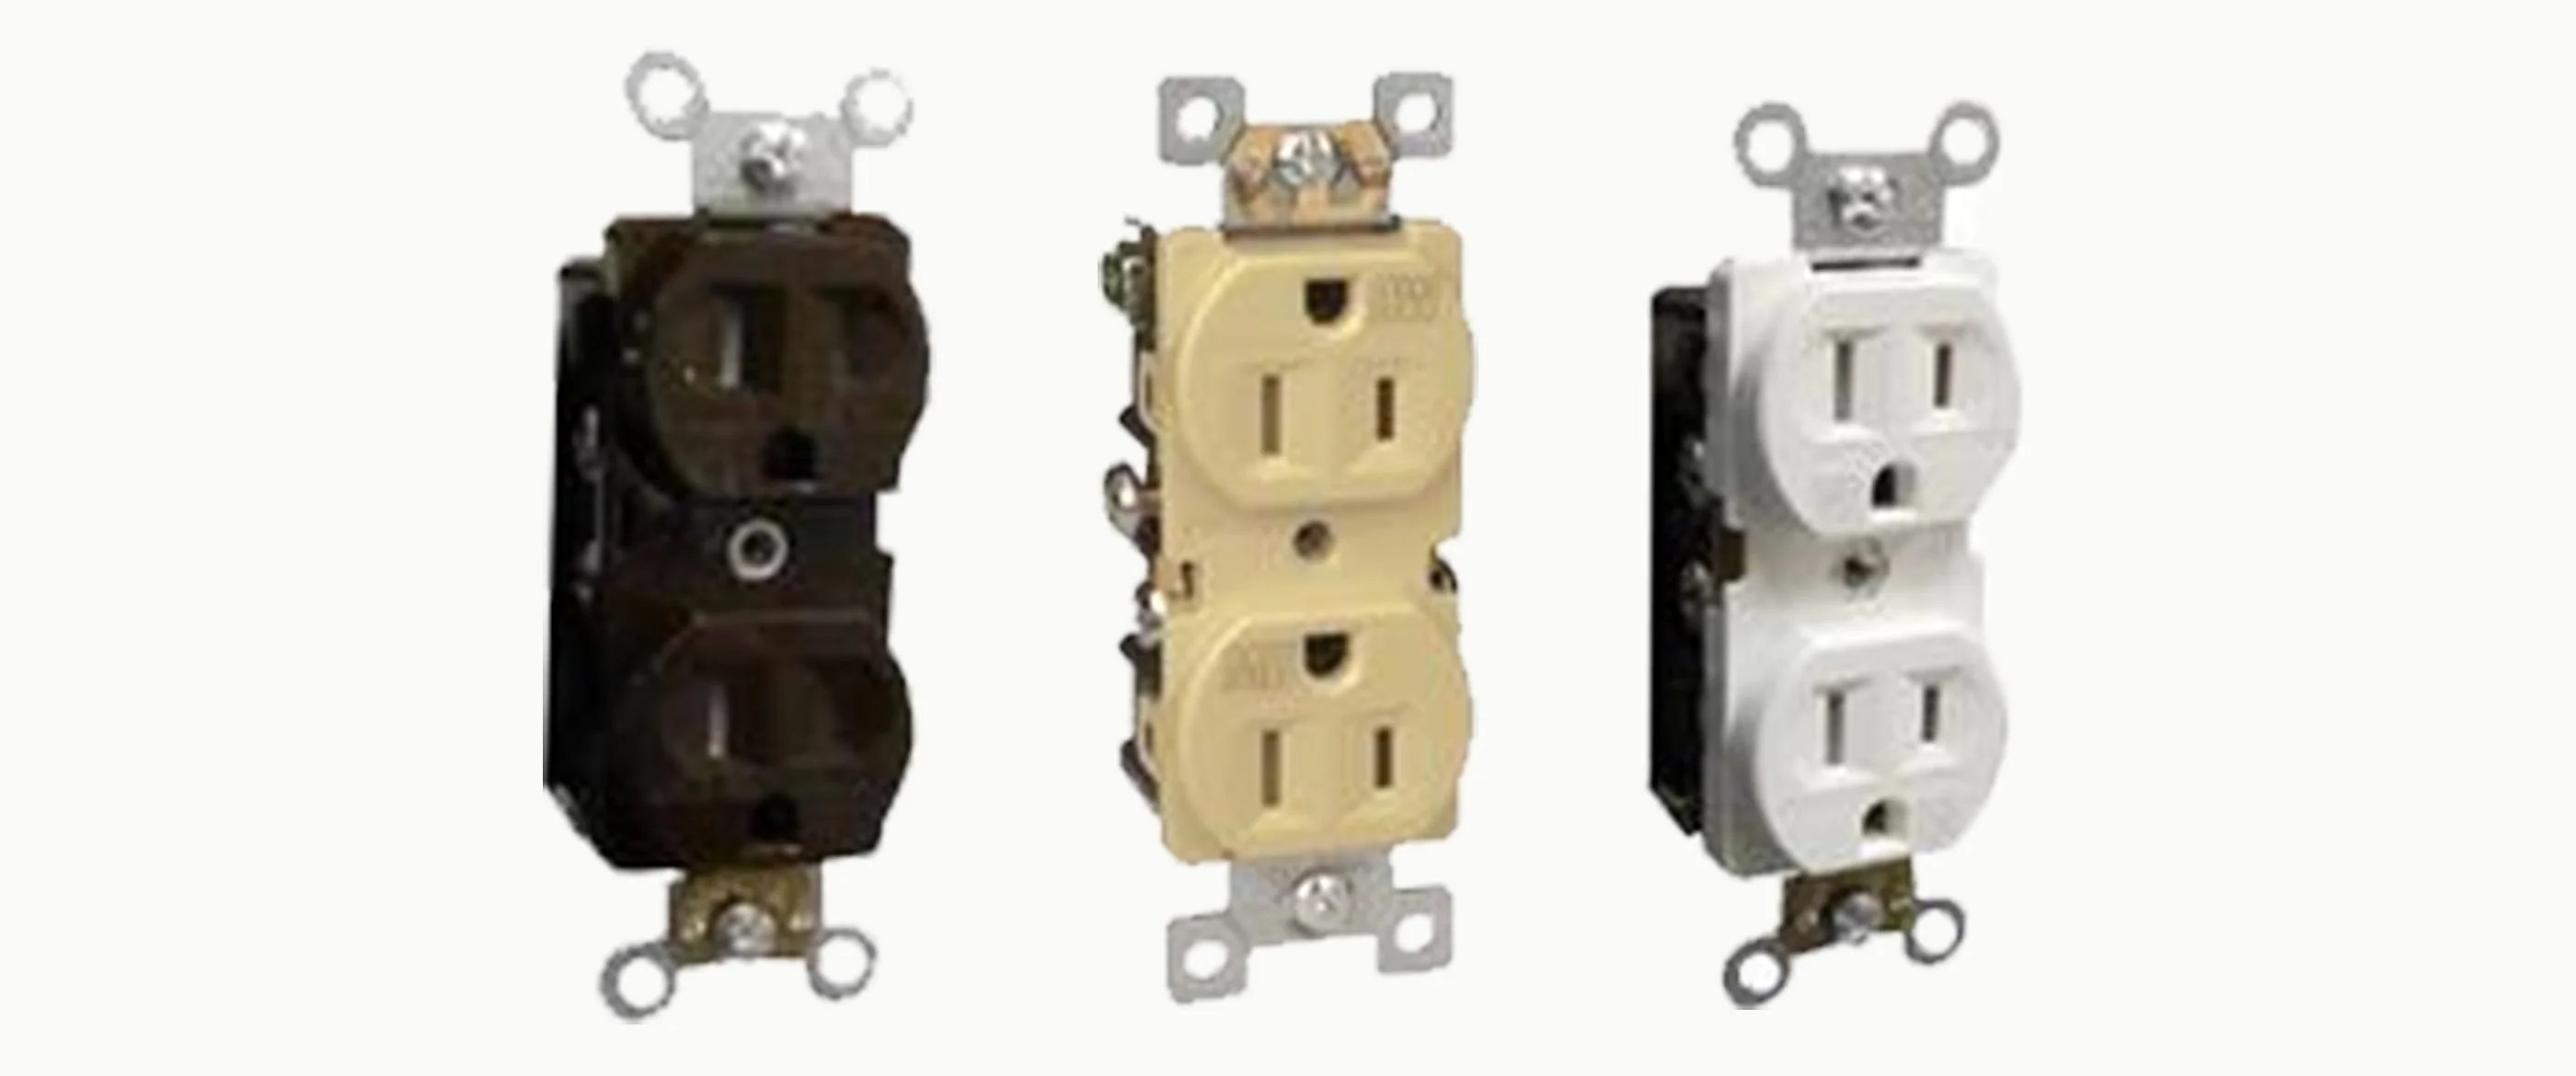 small resolution of  duplex wiring diagram for duplex receptacle on duplex switch receptacle ungrounded duplex with usb